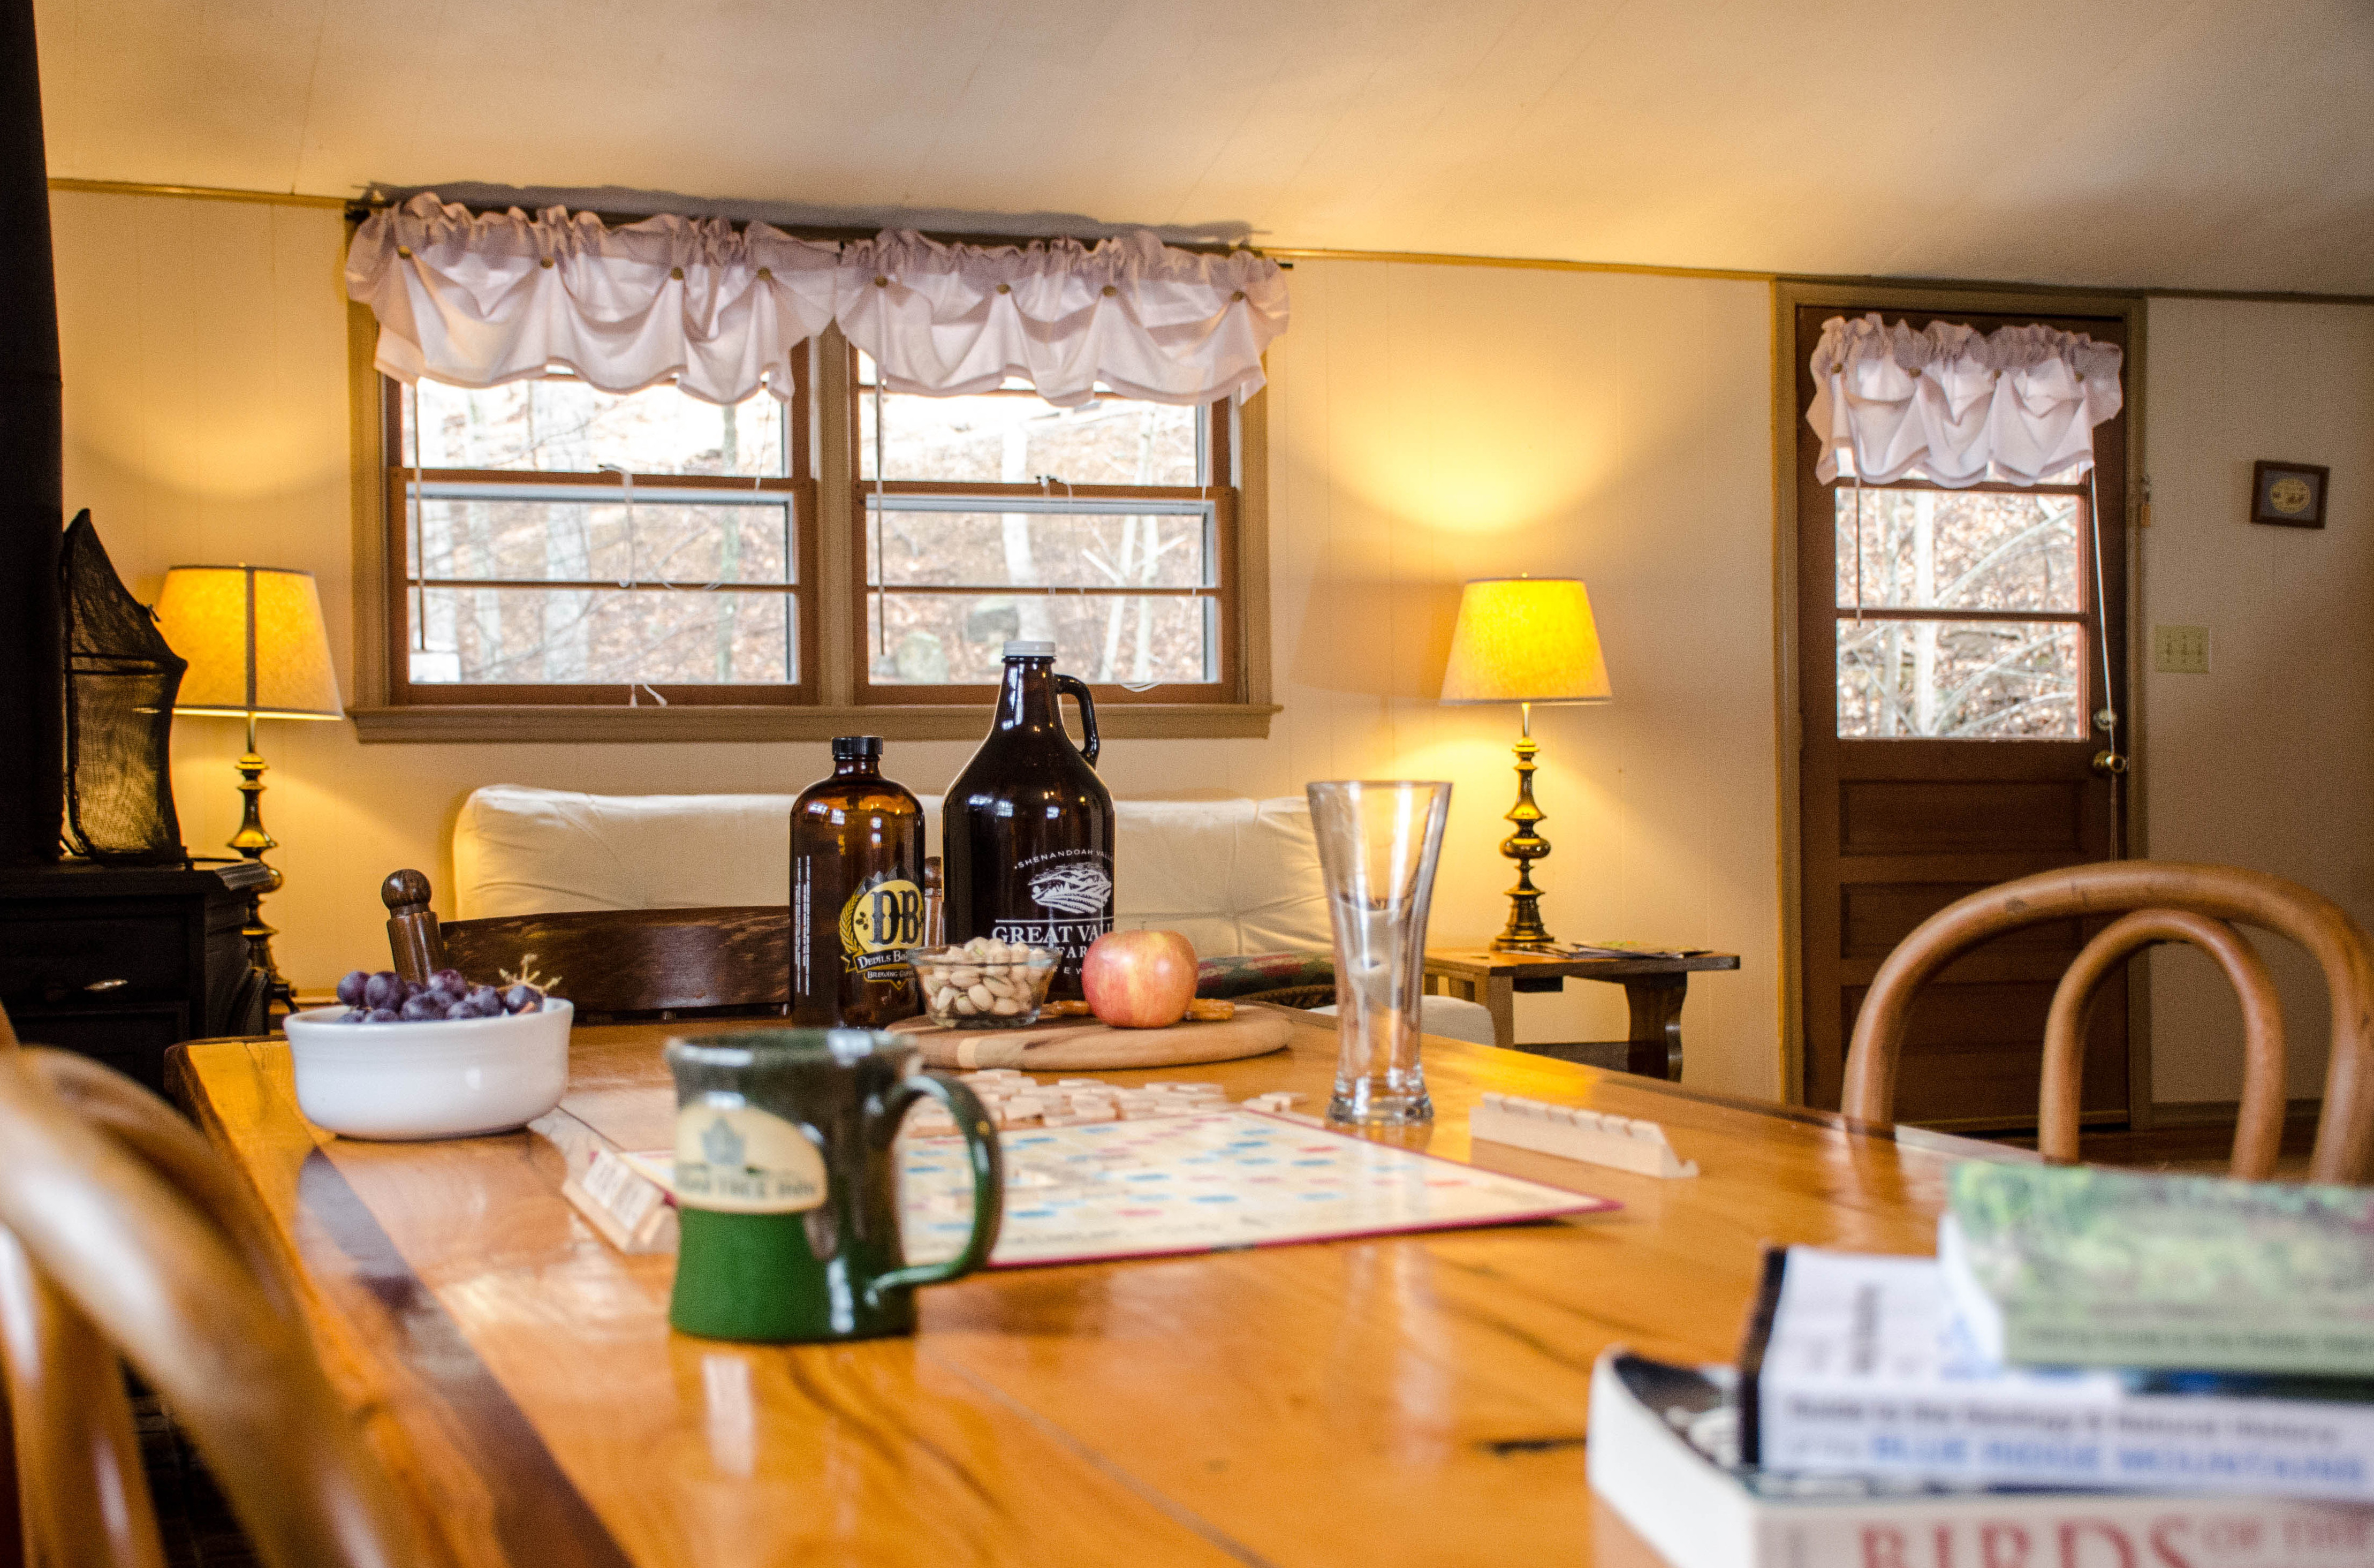 Creek House with Devils Backbone and Great Valley Farms growlers on table with Scrabble Game out